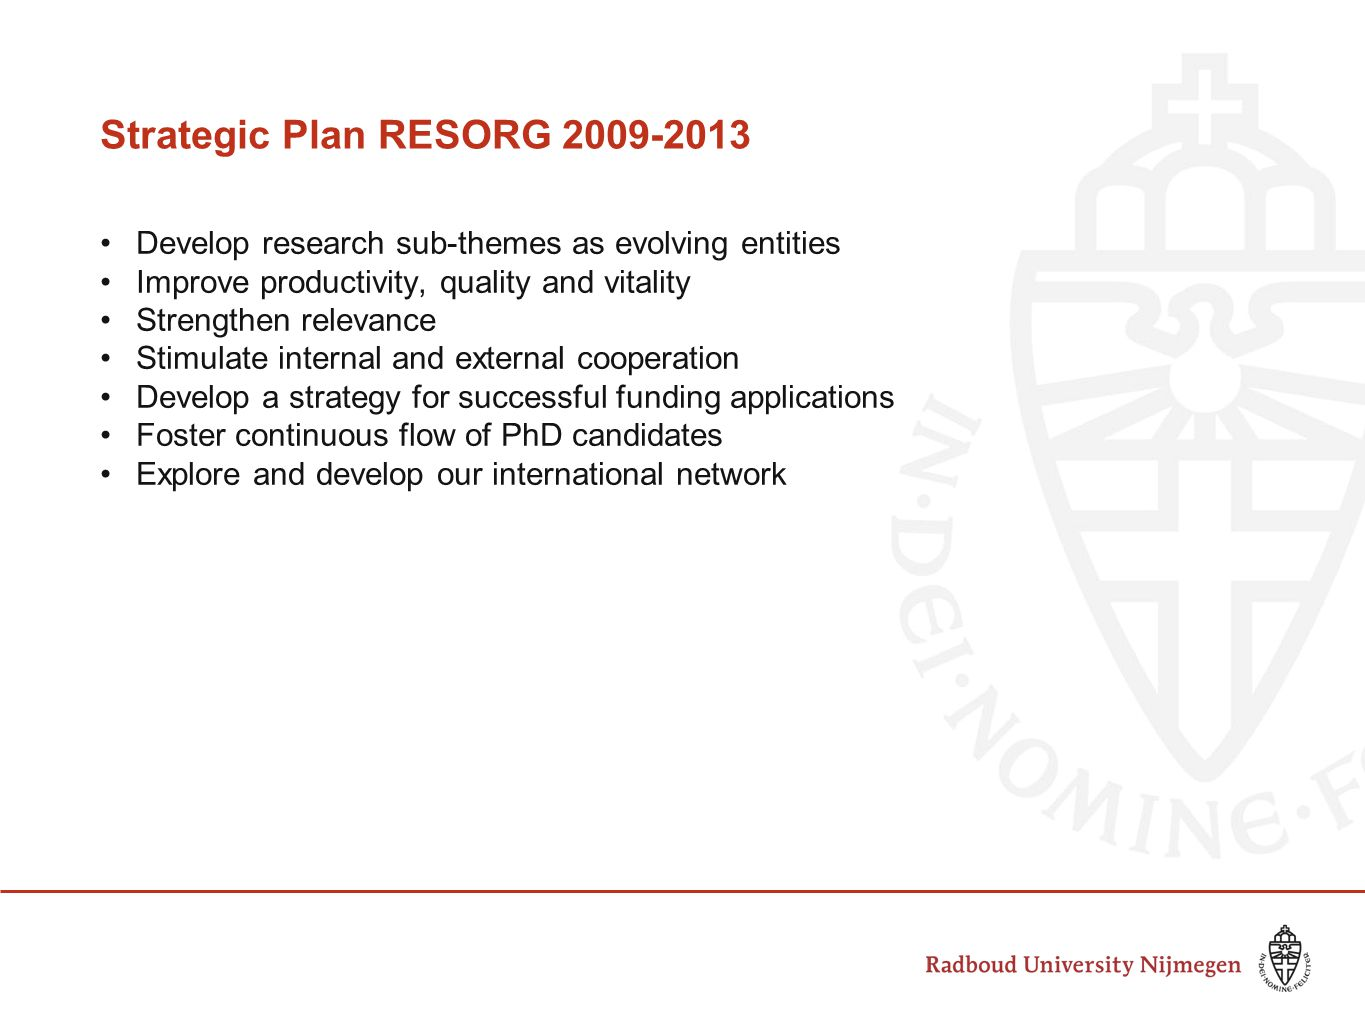 Strategic Plan RESORG 2009-2013 Develop research sub-themes as evolving entities Improve productivity, quality and vitality Strengthen relevance Stimu